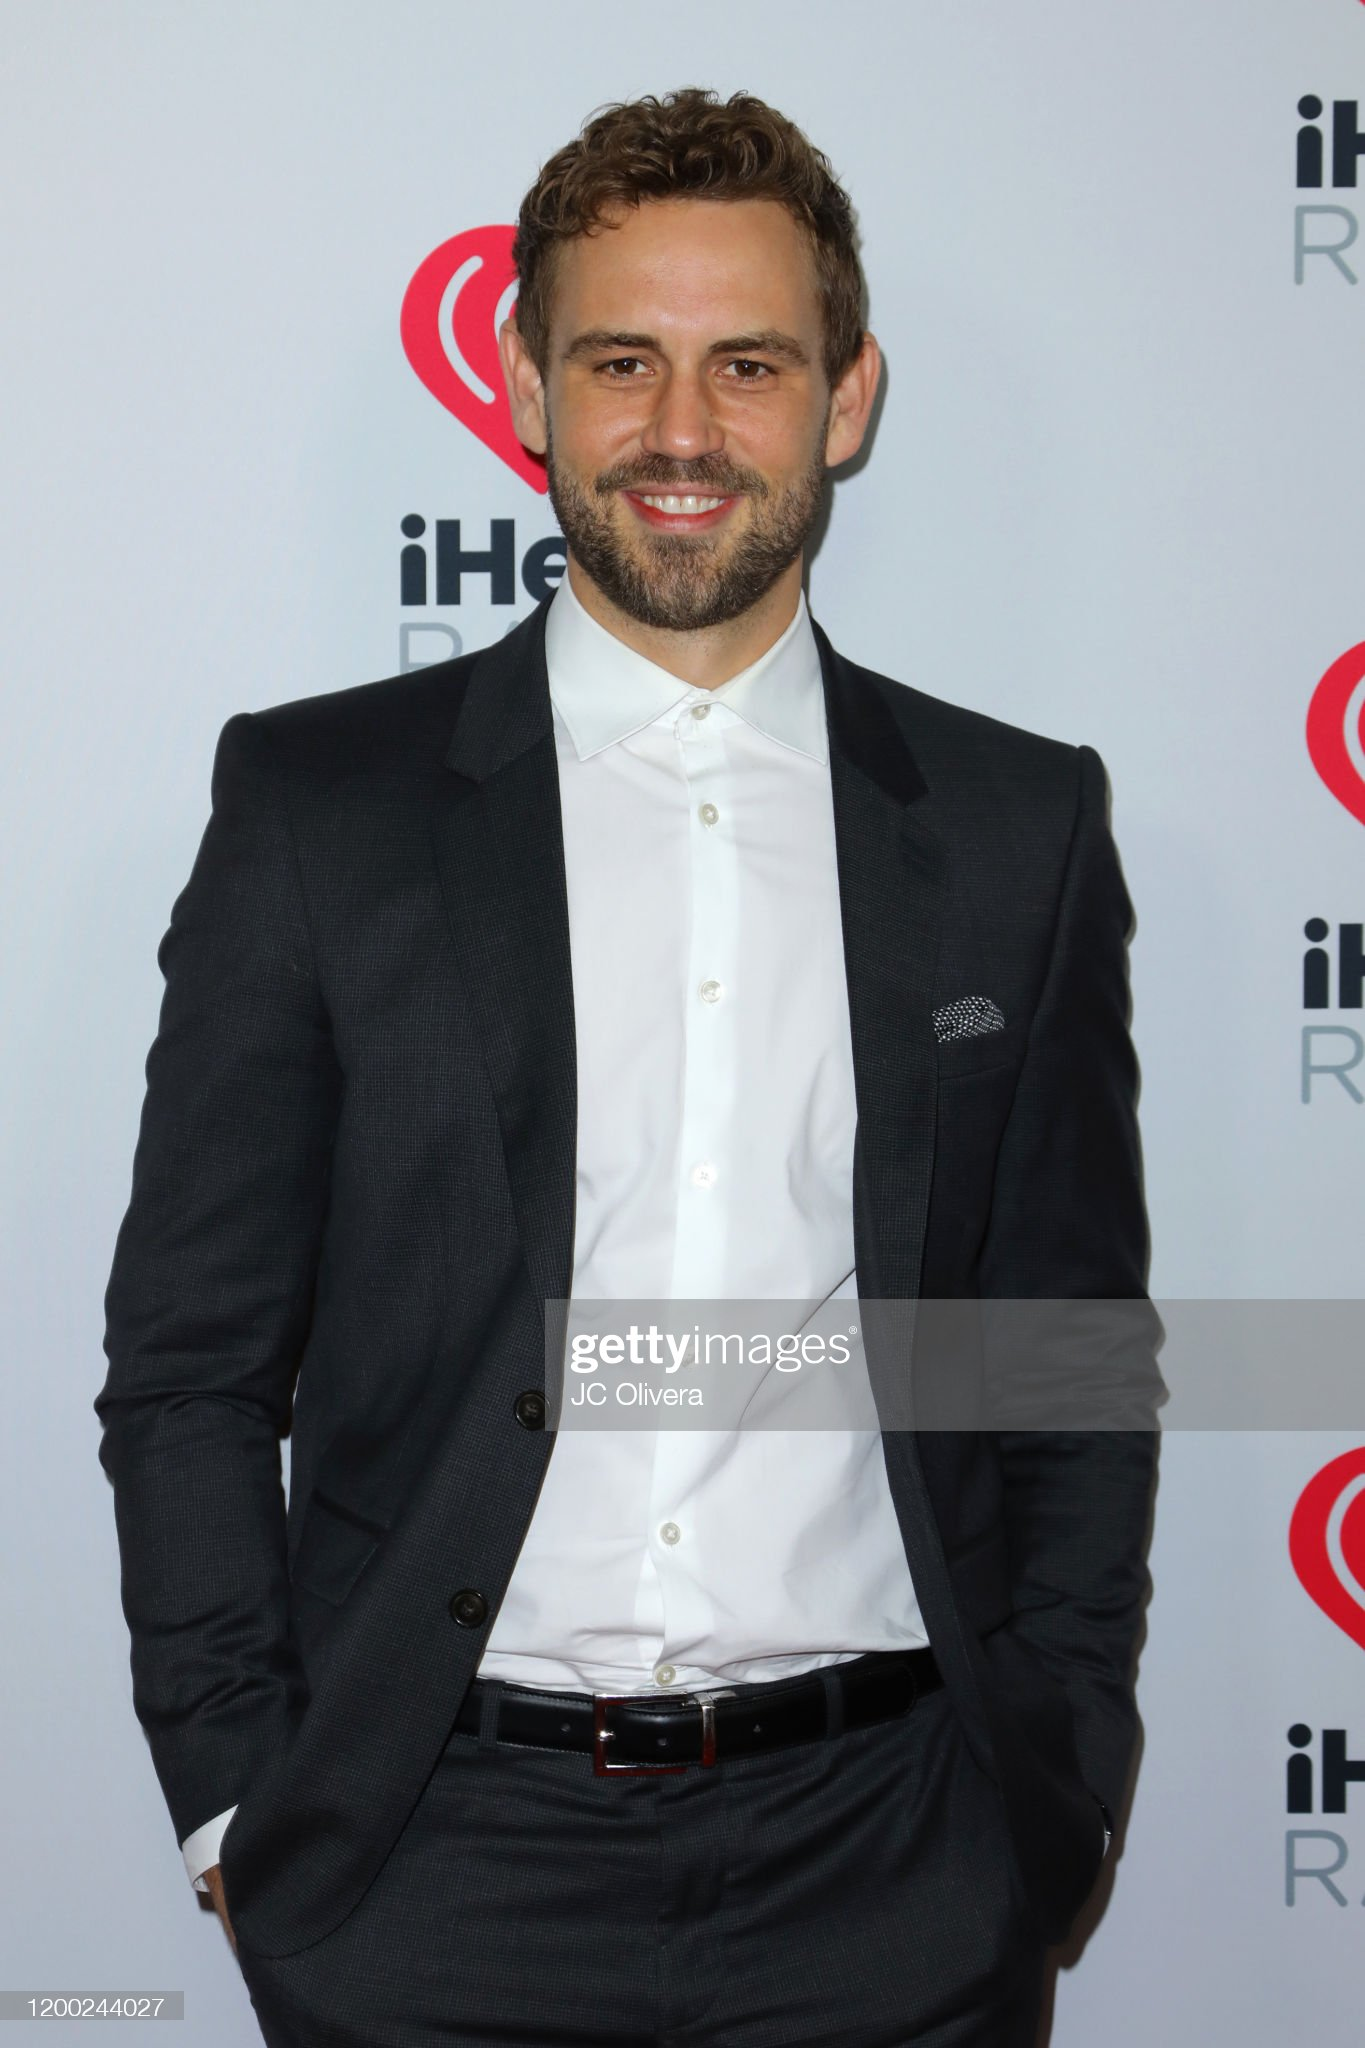 Nick Viall - Bachelor 21 - FAN Forum - Discussion #27 - Page 69 Nick-viall-attends-the-2020-iheartradio-podcast-awards-at-iheartradio-picture-id1200244027?s=2048x2048